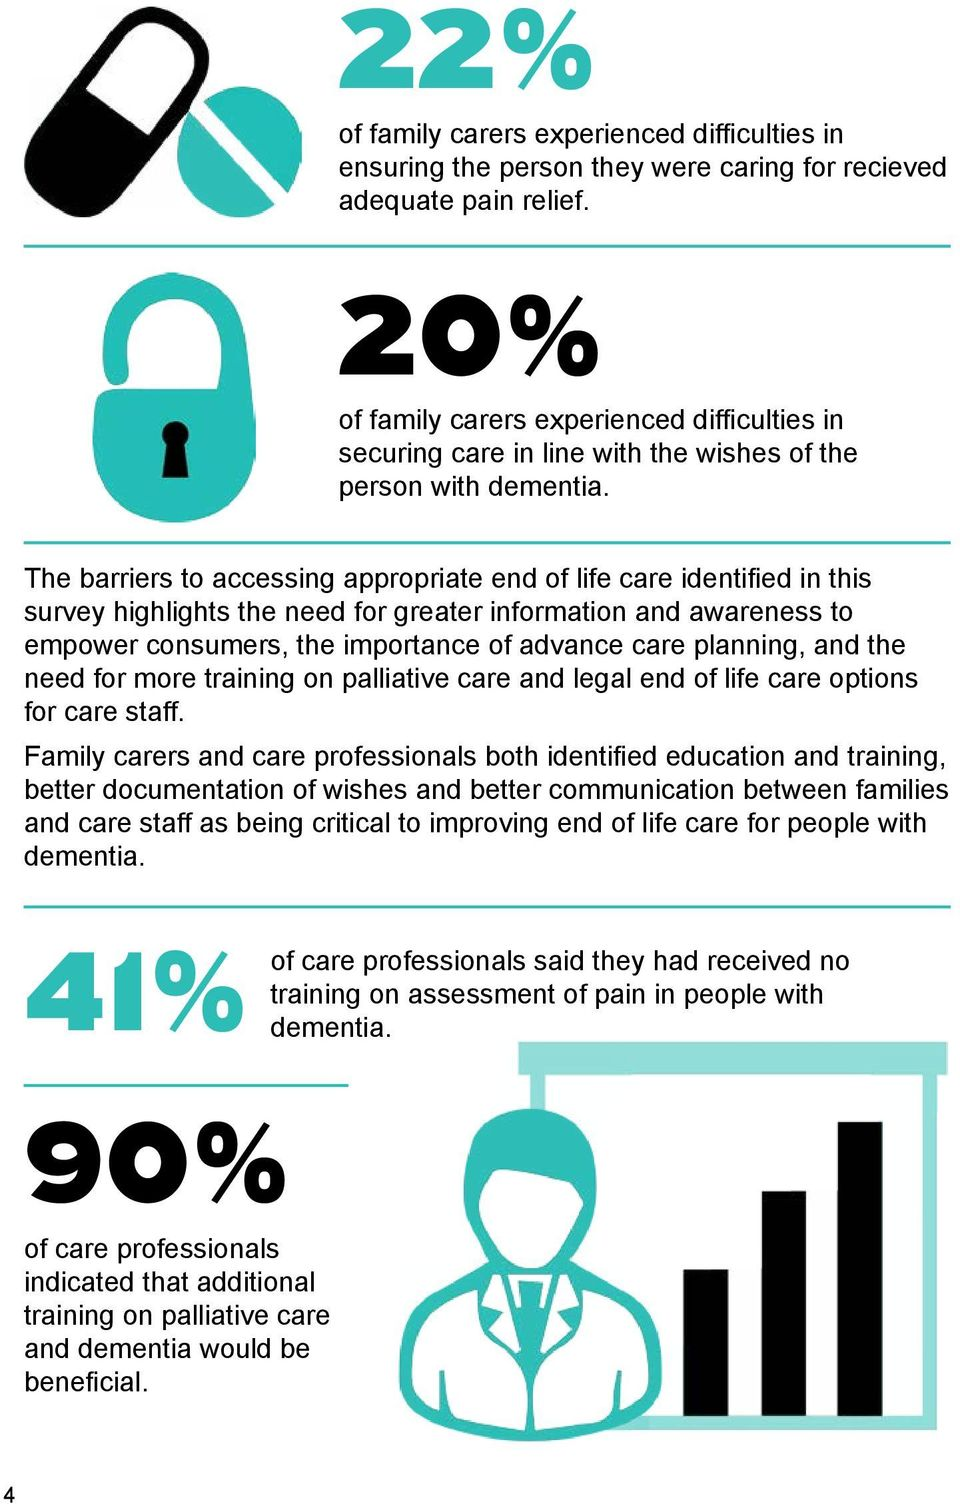 The barriers to accessing appropriate end of life care identified in this survey highlights the need for greater information and awareness to empower consumers, the importance of advance care